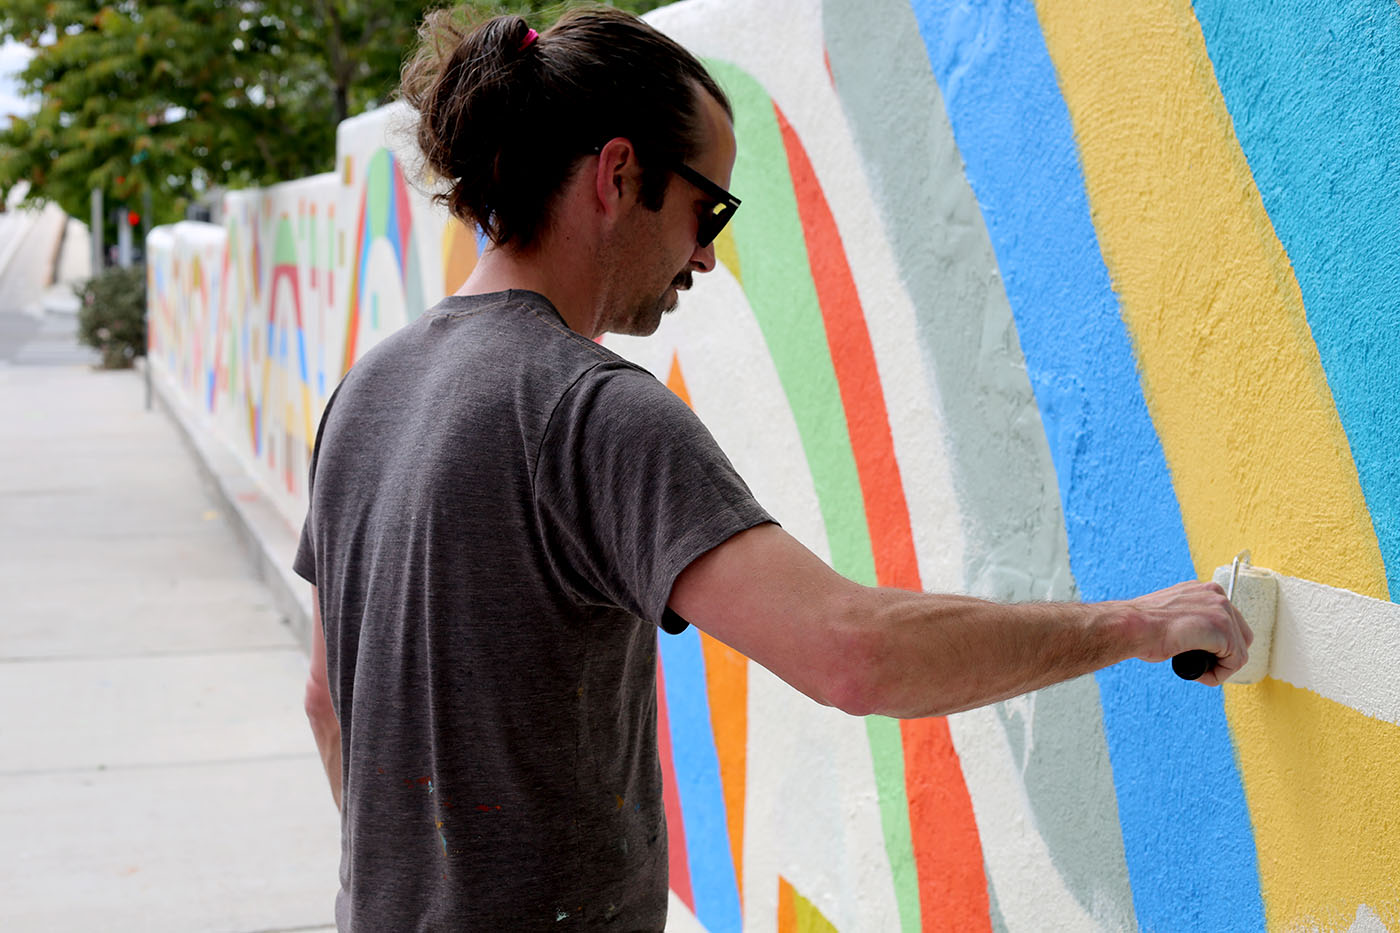 Photo of the pony-tailed artist in sunglasses painting a mural in progress.